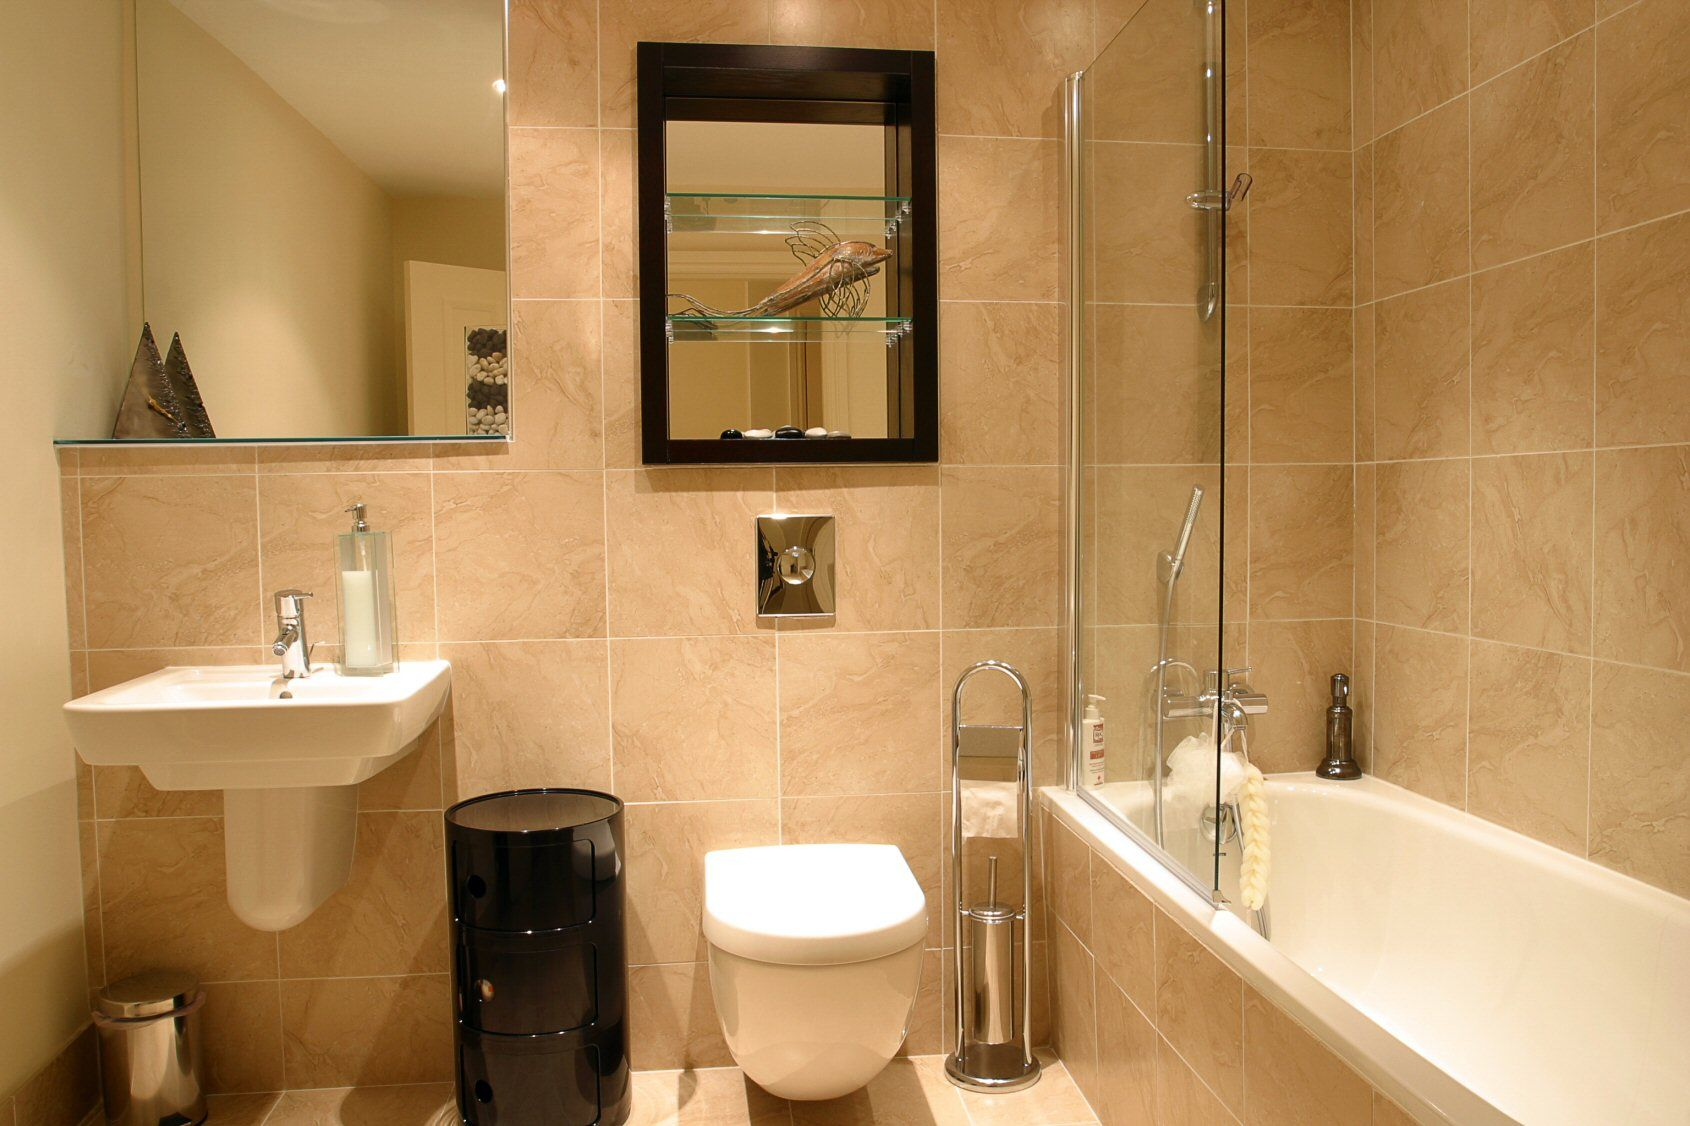 Indian Bathroom Design Unique Bathroom Remodels  Bathrooms Note Pipe Cover  My Home Review